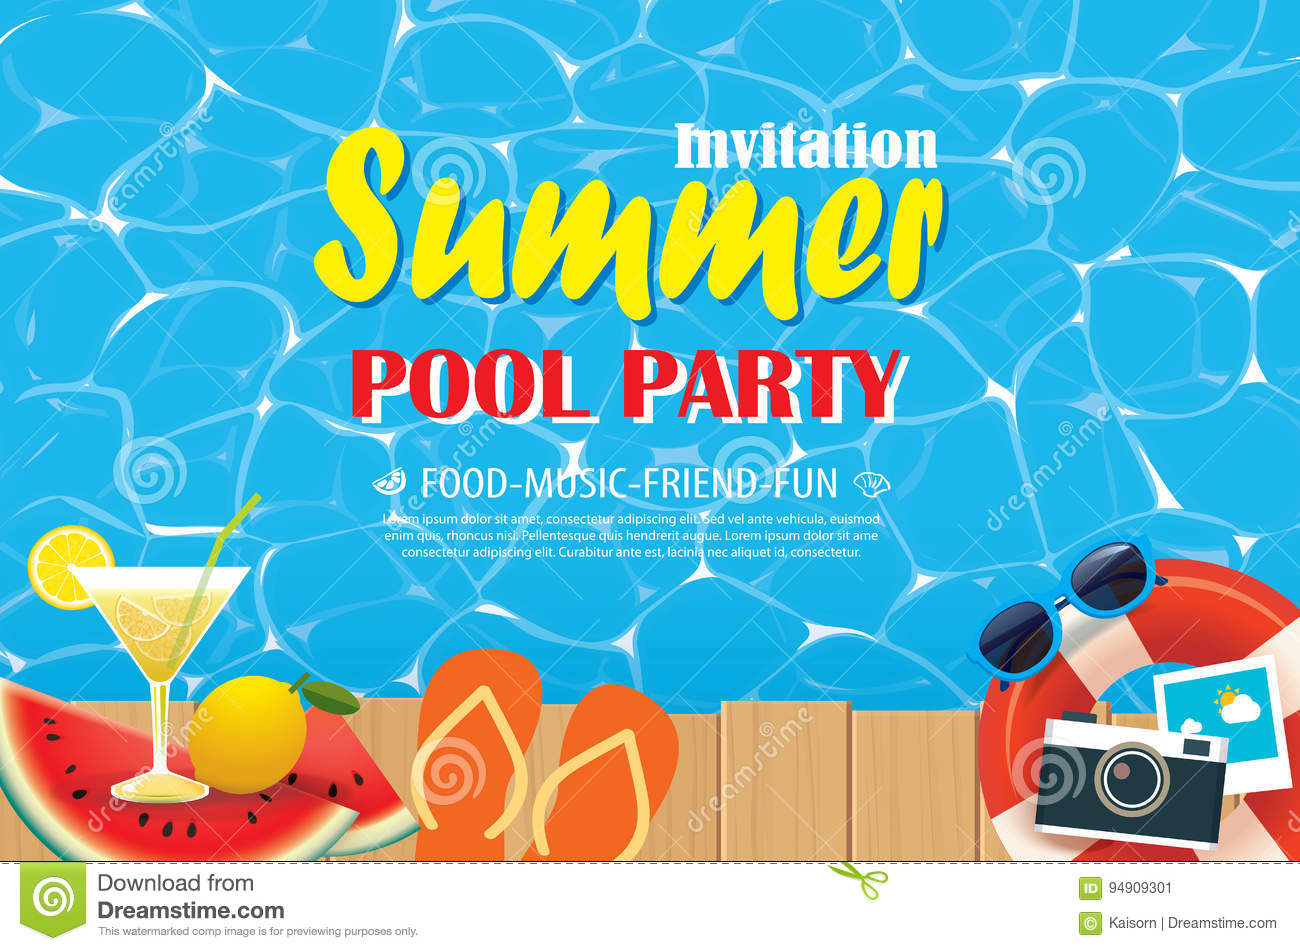 Pool Party Invitation Poster With Blue Water And Wooden. Vector